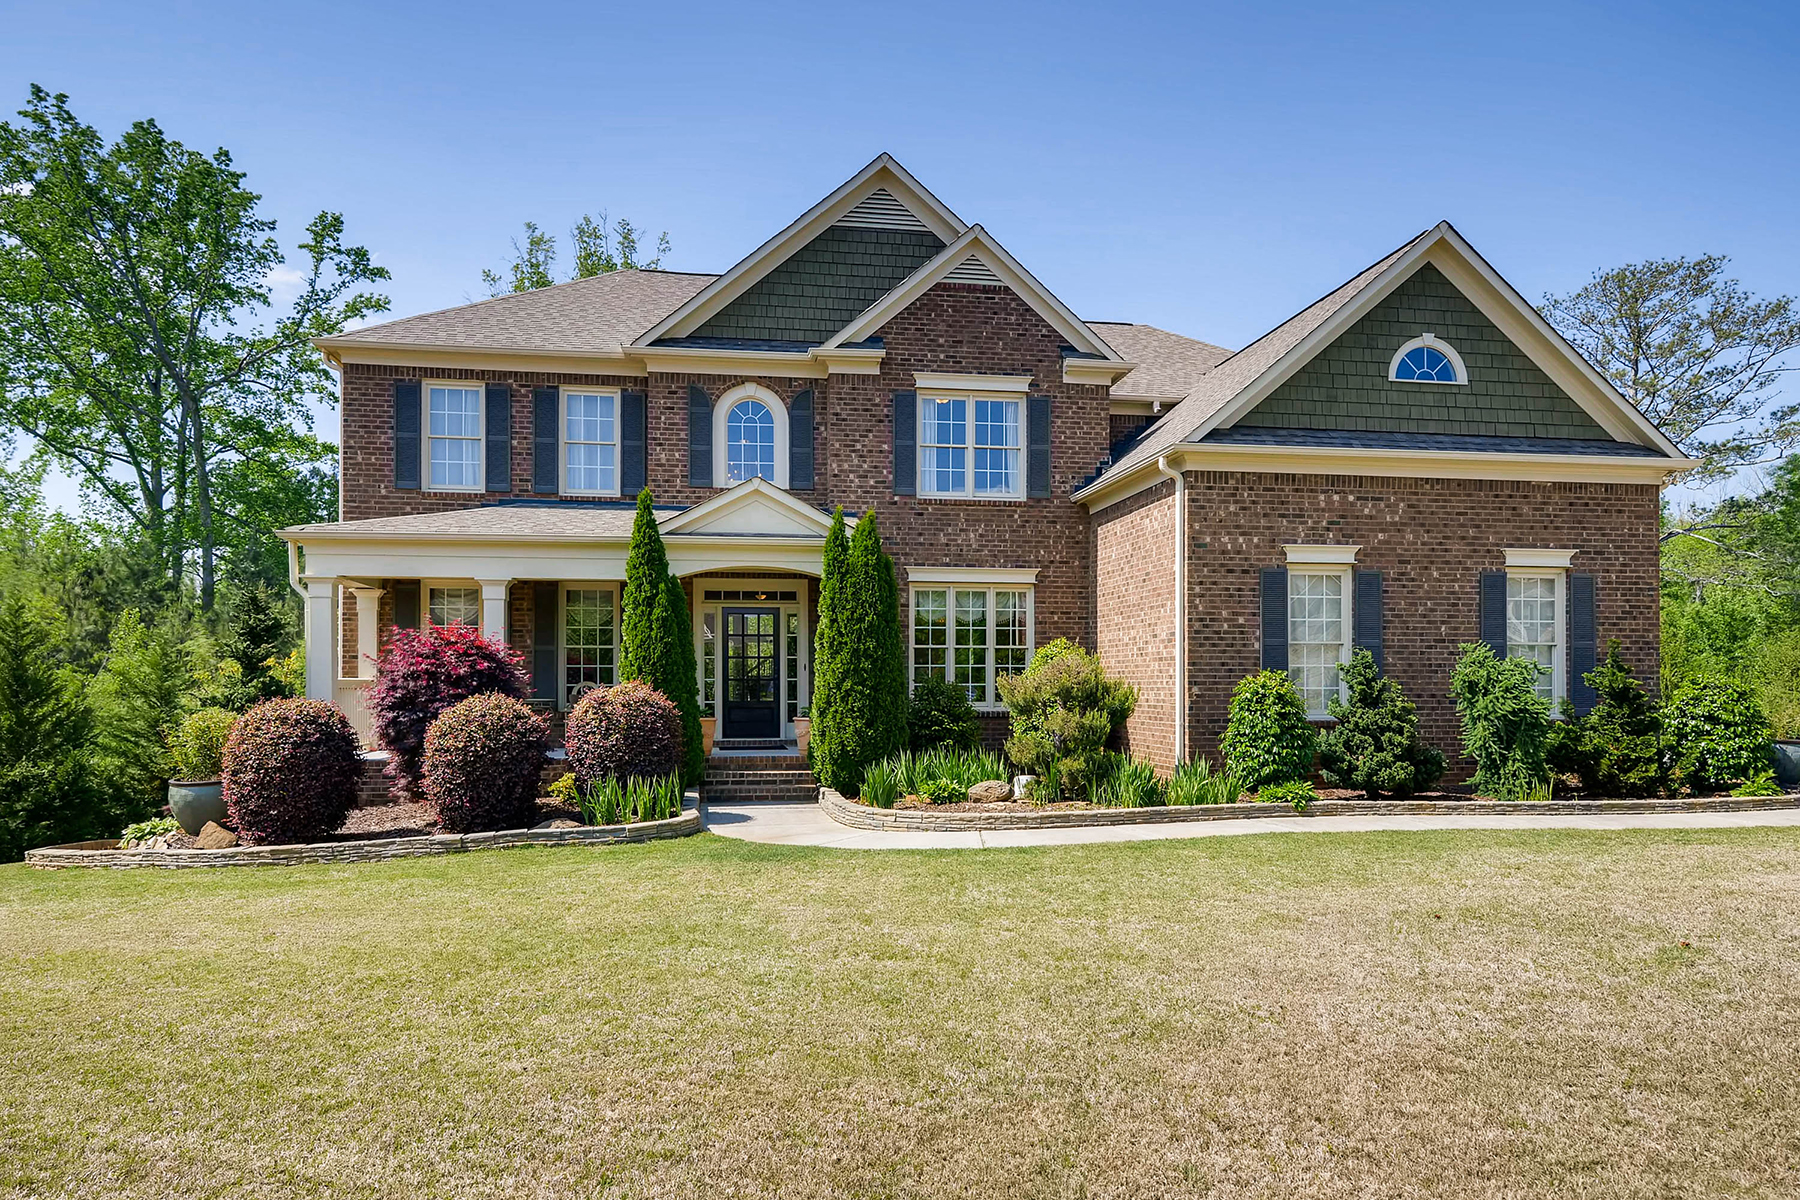 Single Family Home for Sale at Best Of Both Worlds Roswell And Woodstock Villages 205 Rocky Creek Ct Woodstock, Georgia 30188 United States